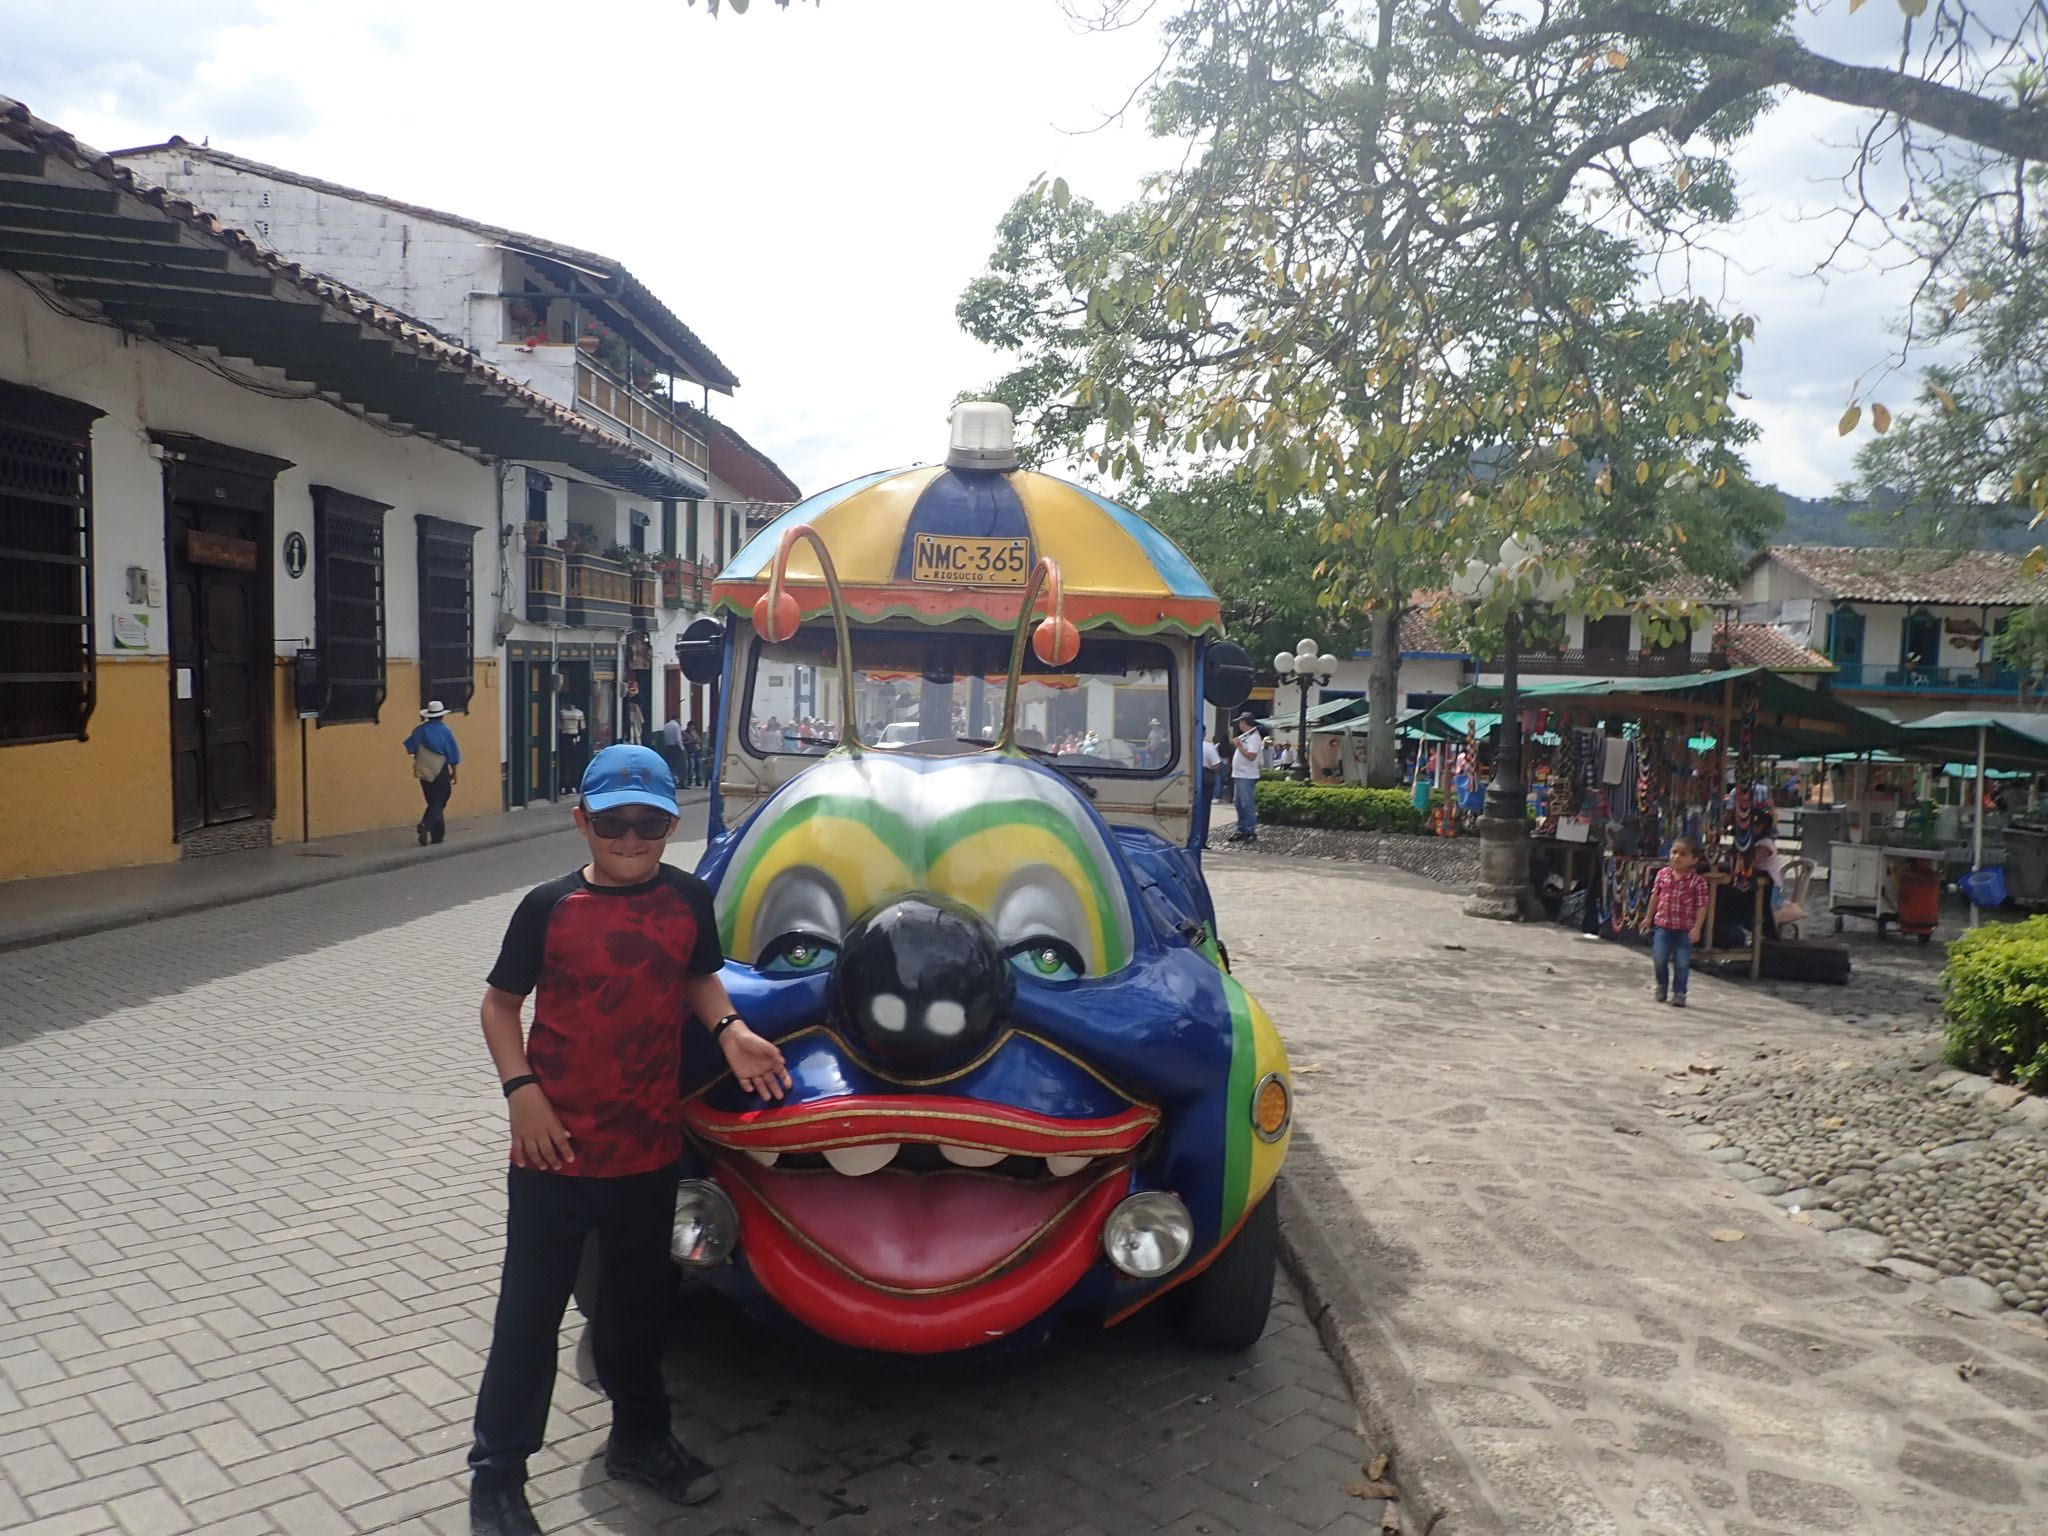 Mateo in front of a caterpillar train Jardin, Colombia